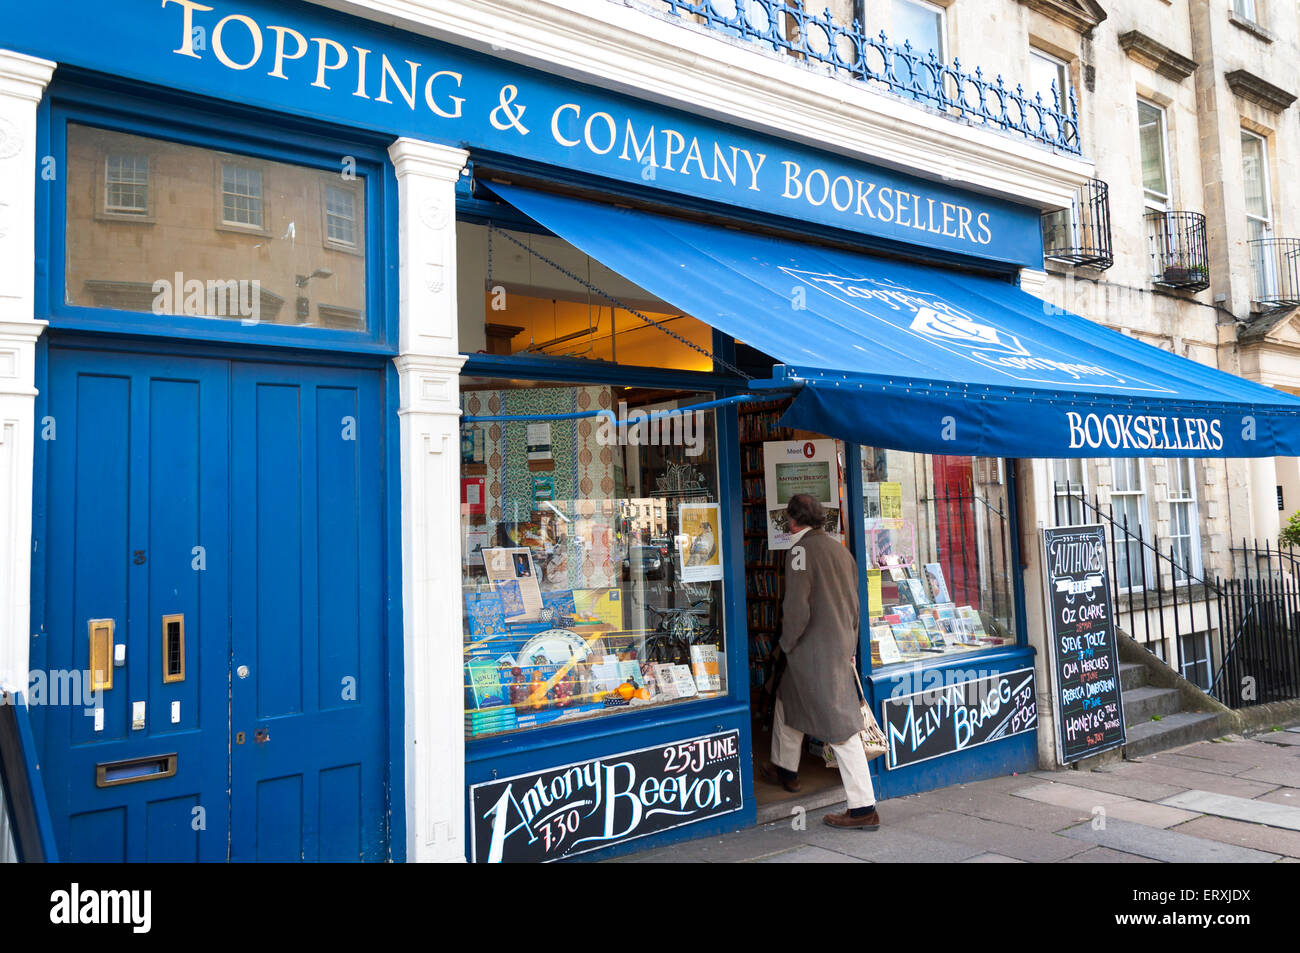 Topping and Company Booksellers Bookshop in The Paragon, Bath, Somerset, UK - Stock Image